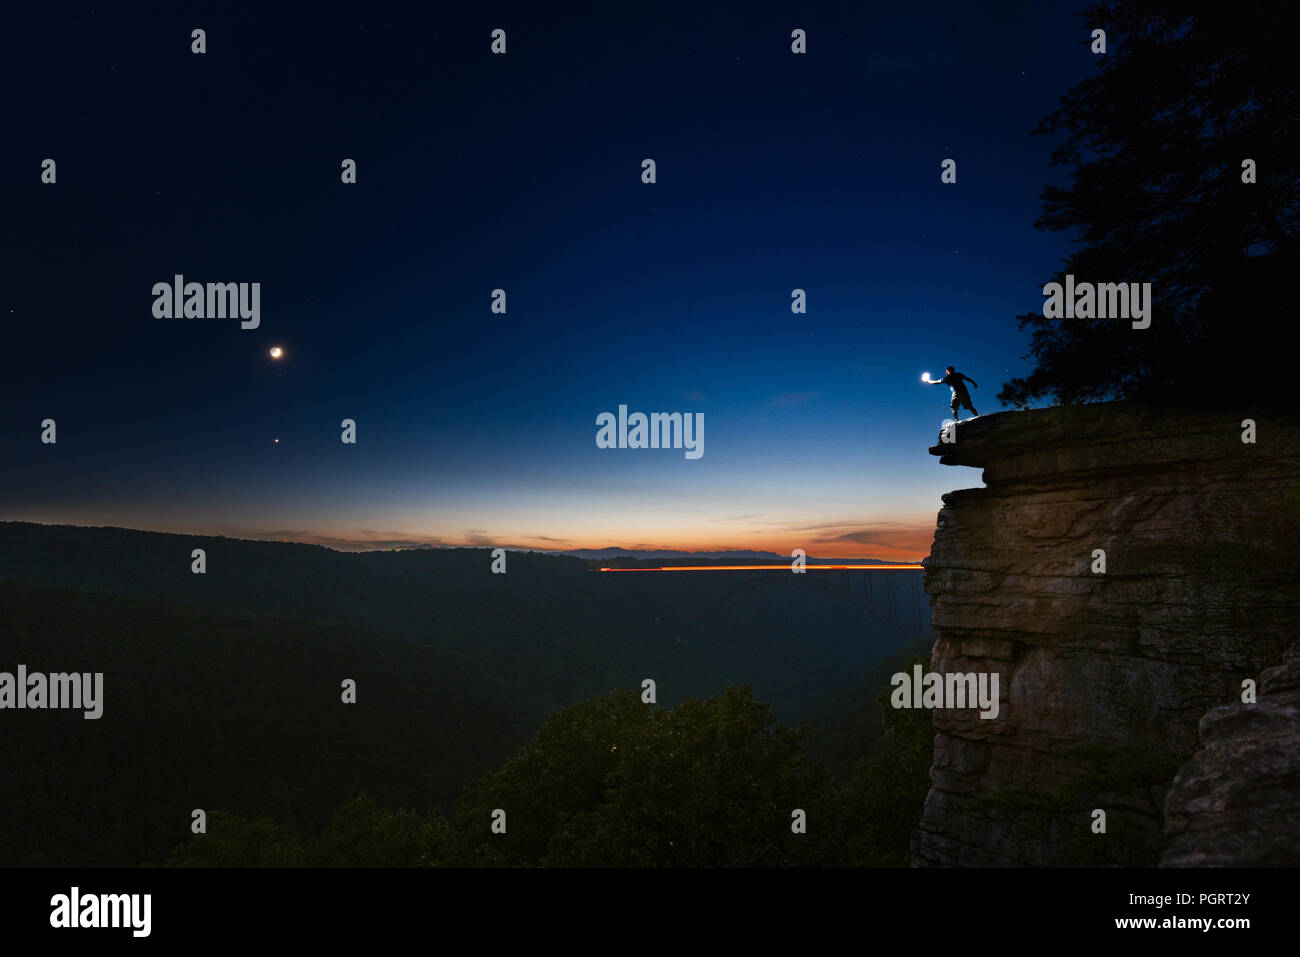 A man stands silhouetted against the sky on the edge of a cliff with a lighted hand reaching across a chasm opposite the crescent moon in the night. - Stock Image